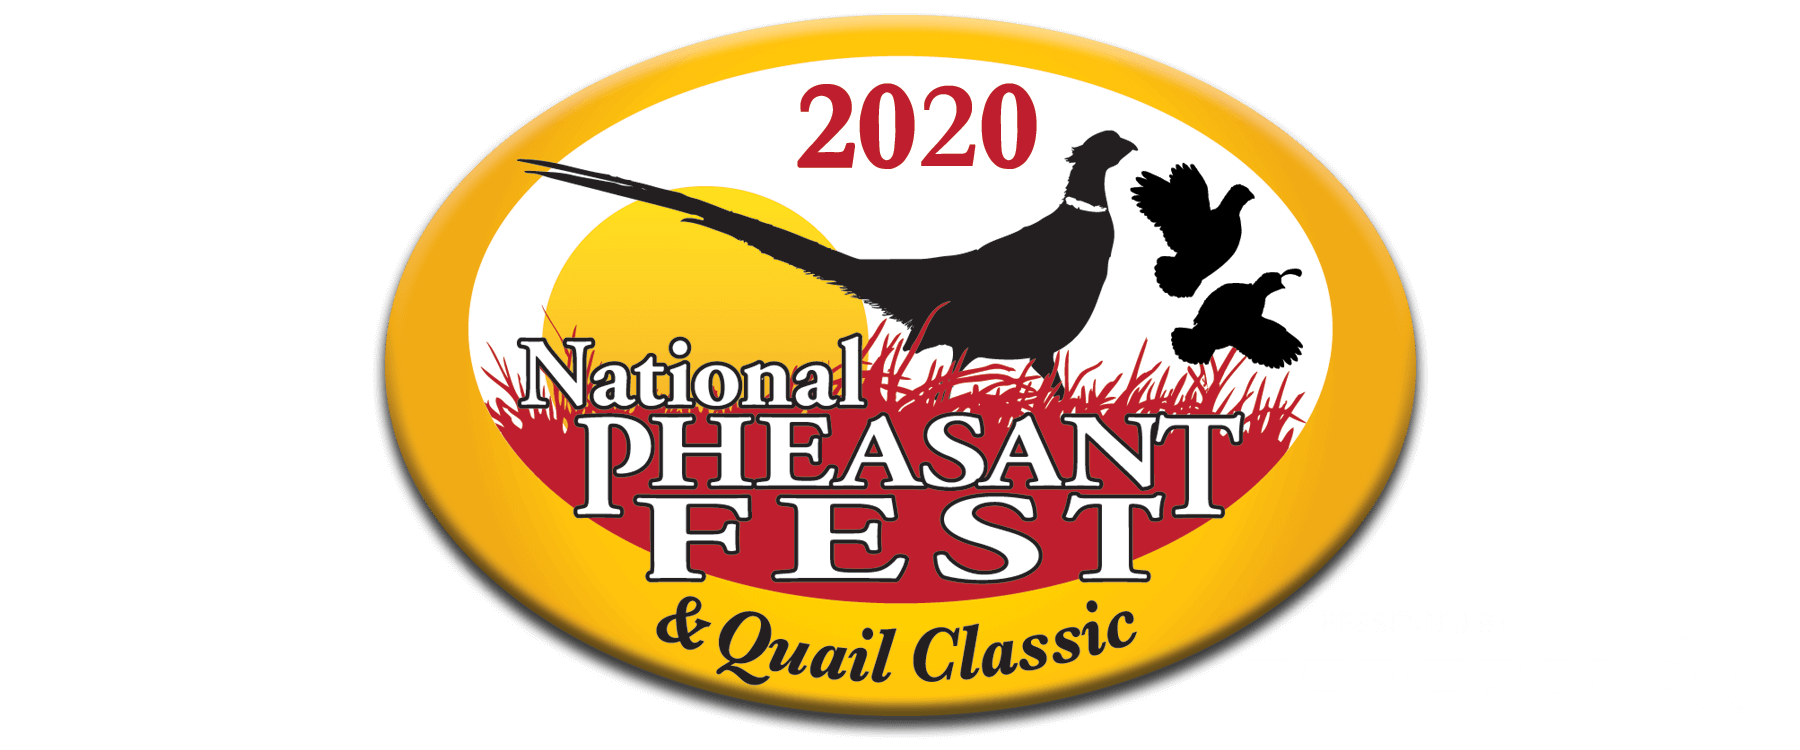 National Pheasant Fest and Quail Classic 2020